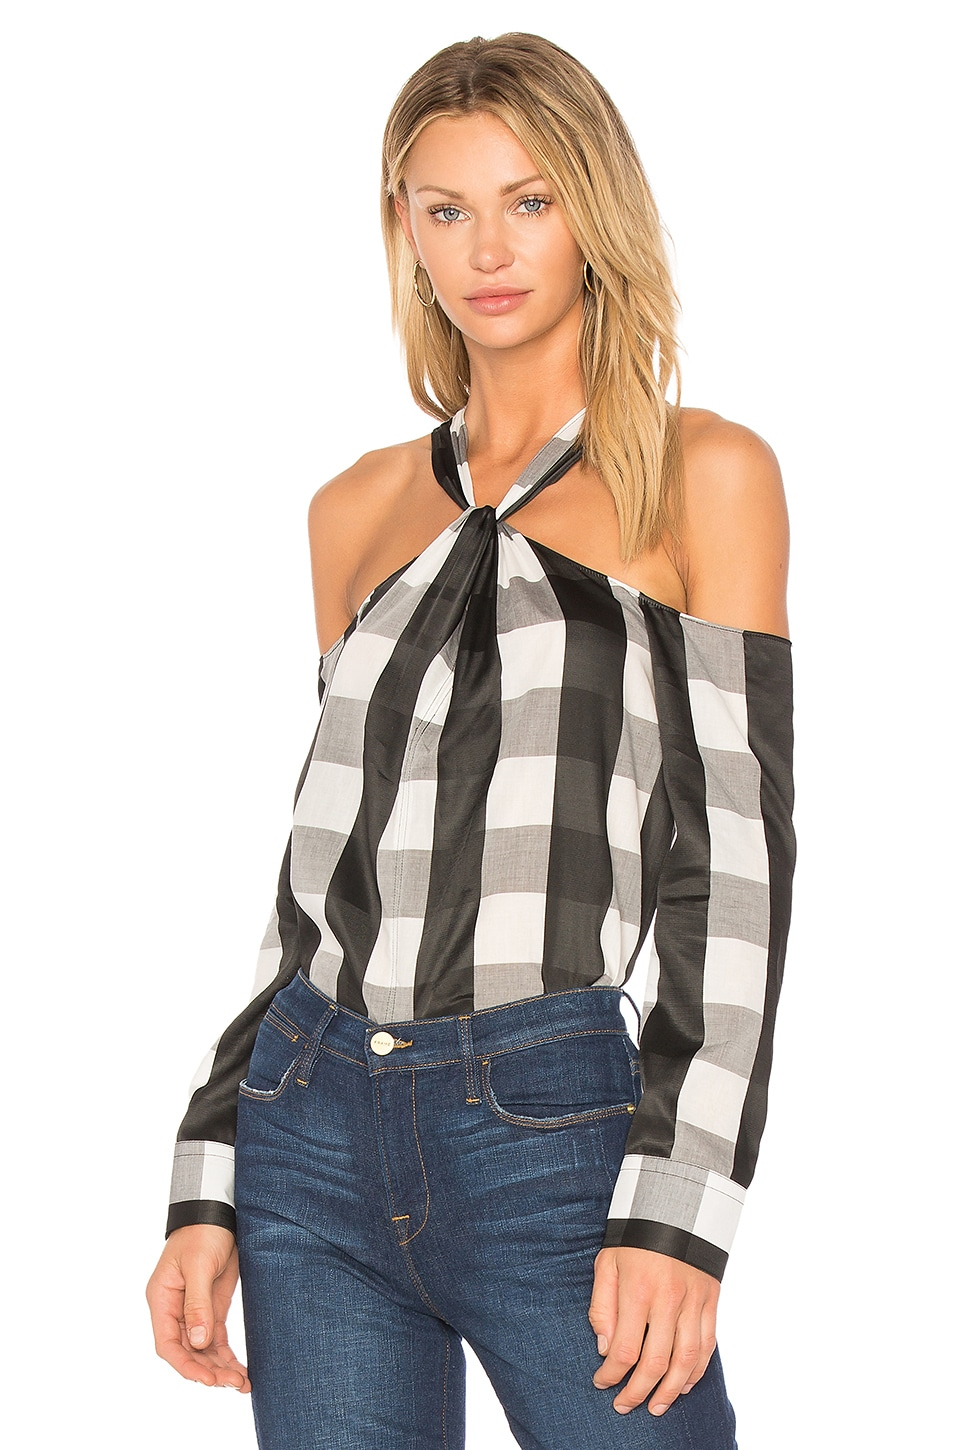 Collingwood Plaid Top by Rag & Bone